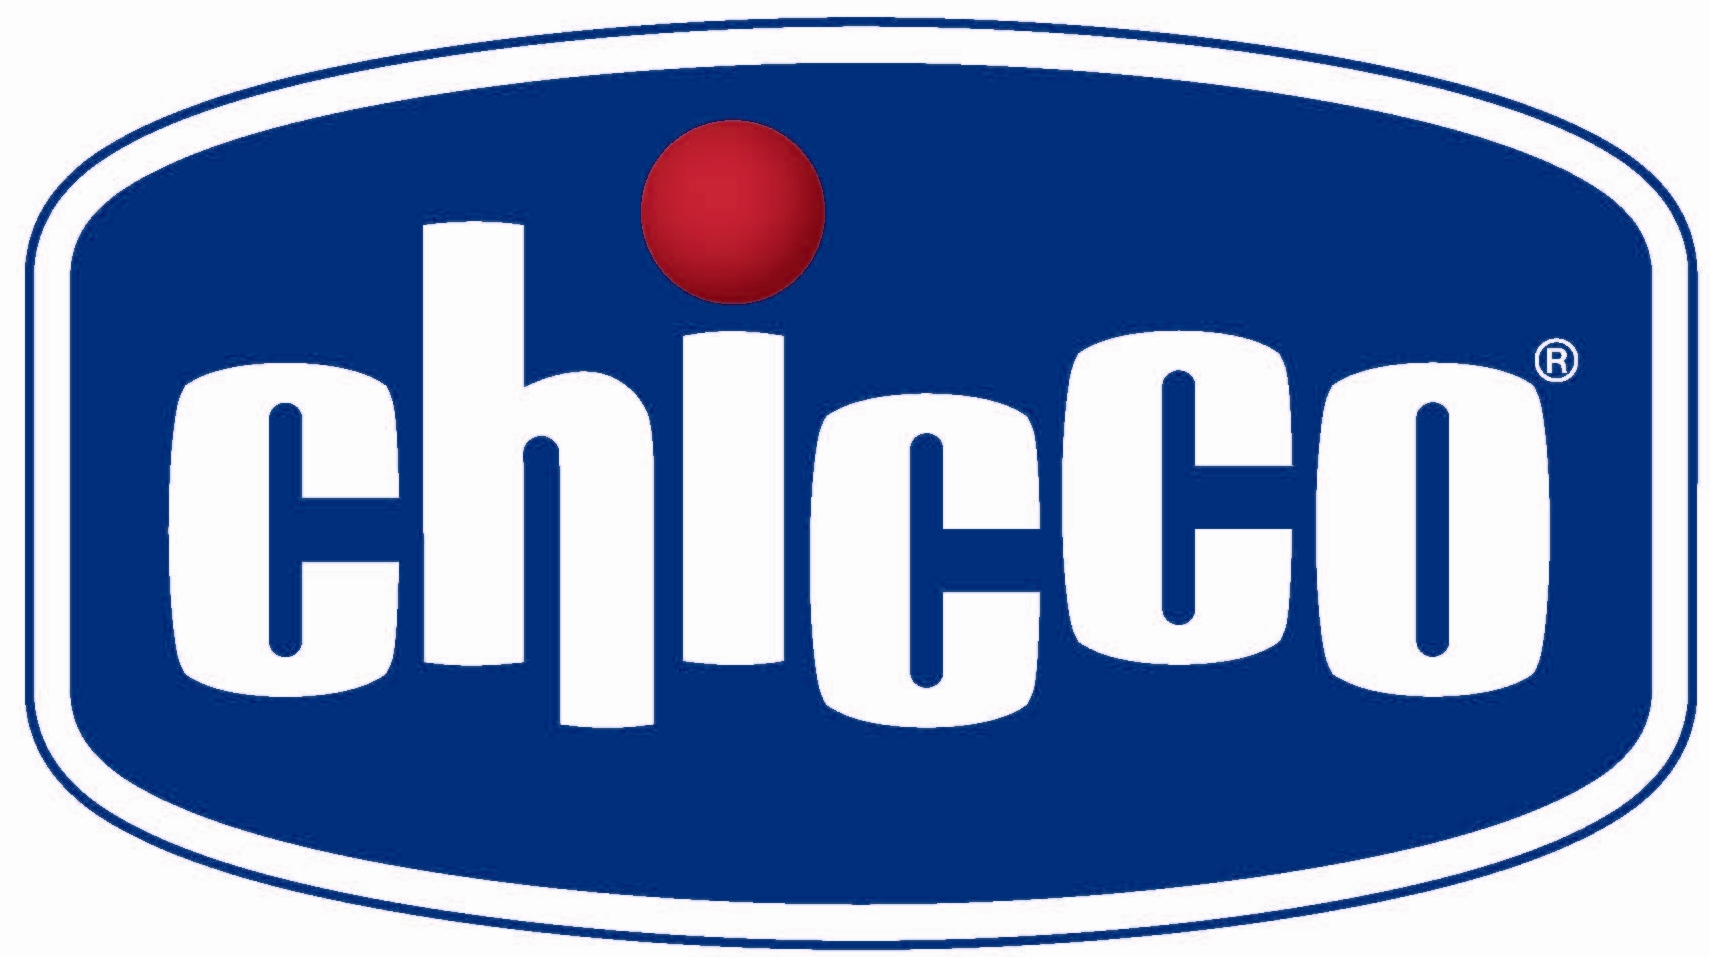 Chicco Introduces New Car Seat Their Product Line